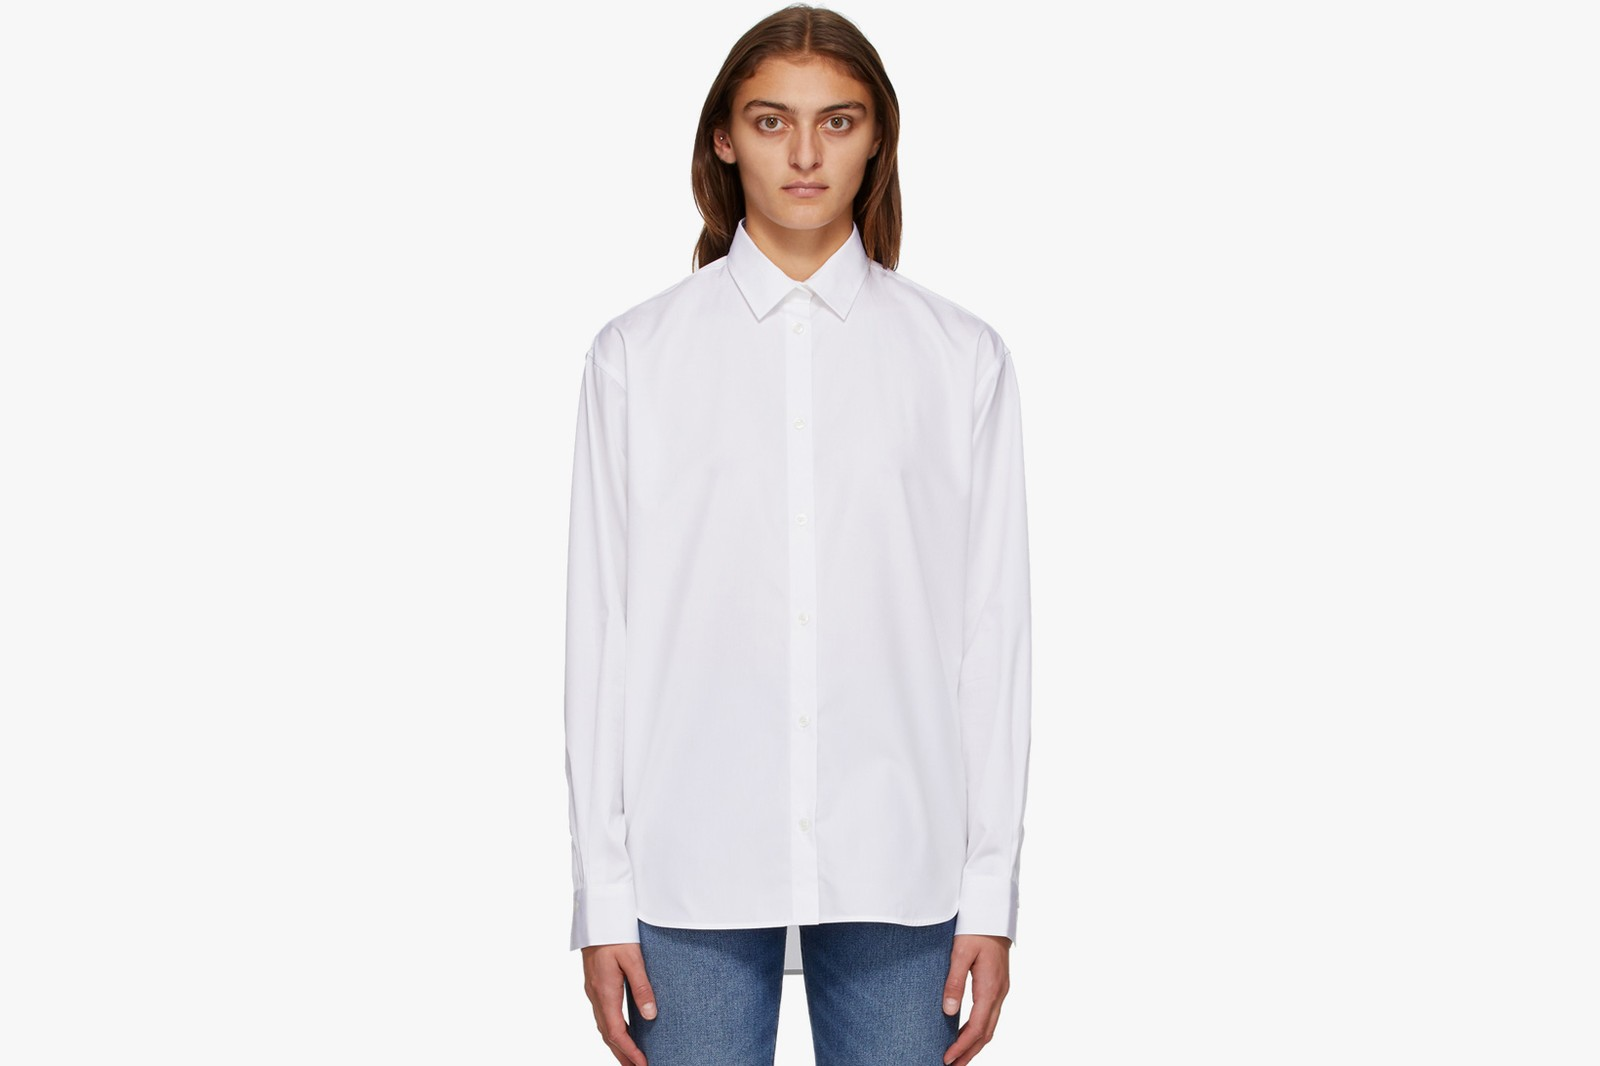 best white shirts styling casual formal outfit guide cotton poplin long sleeved jacquemus ganni toteme lemaire balenciaga